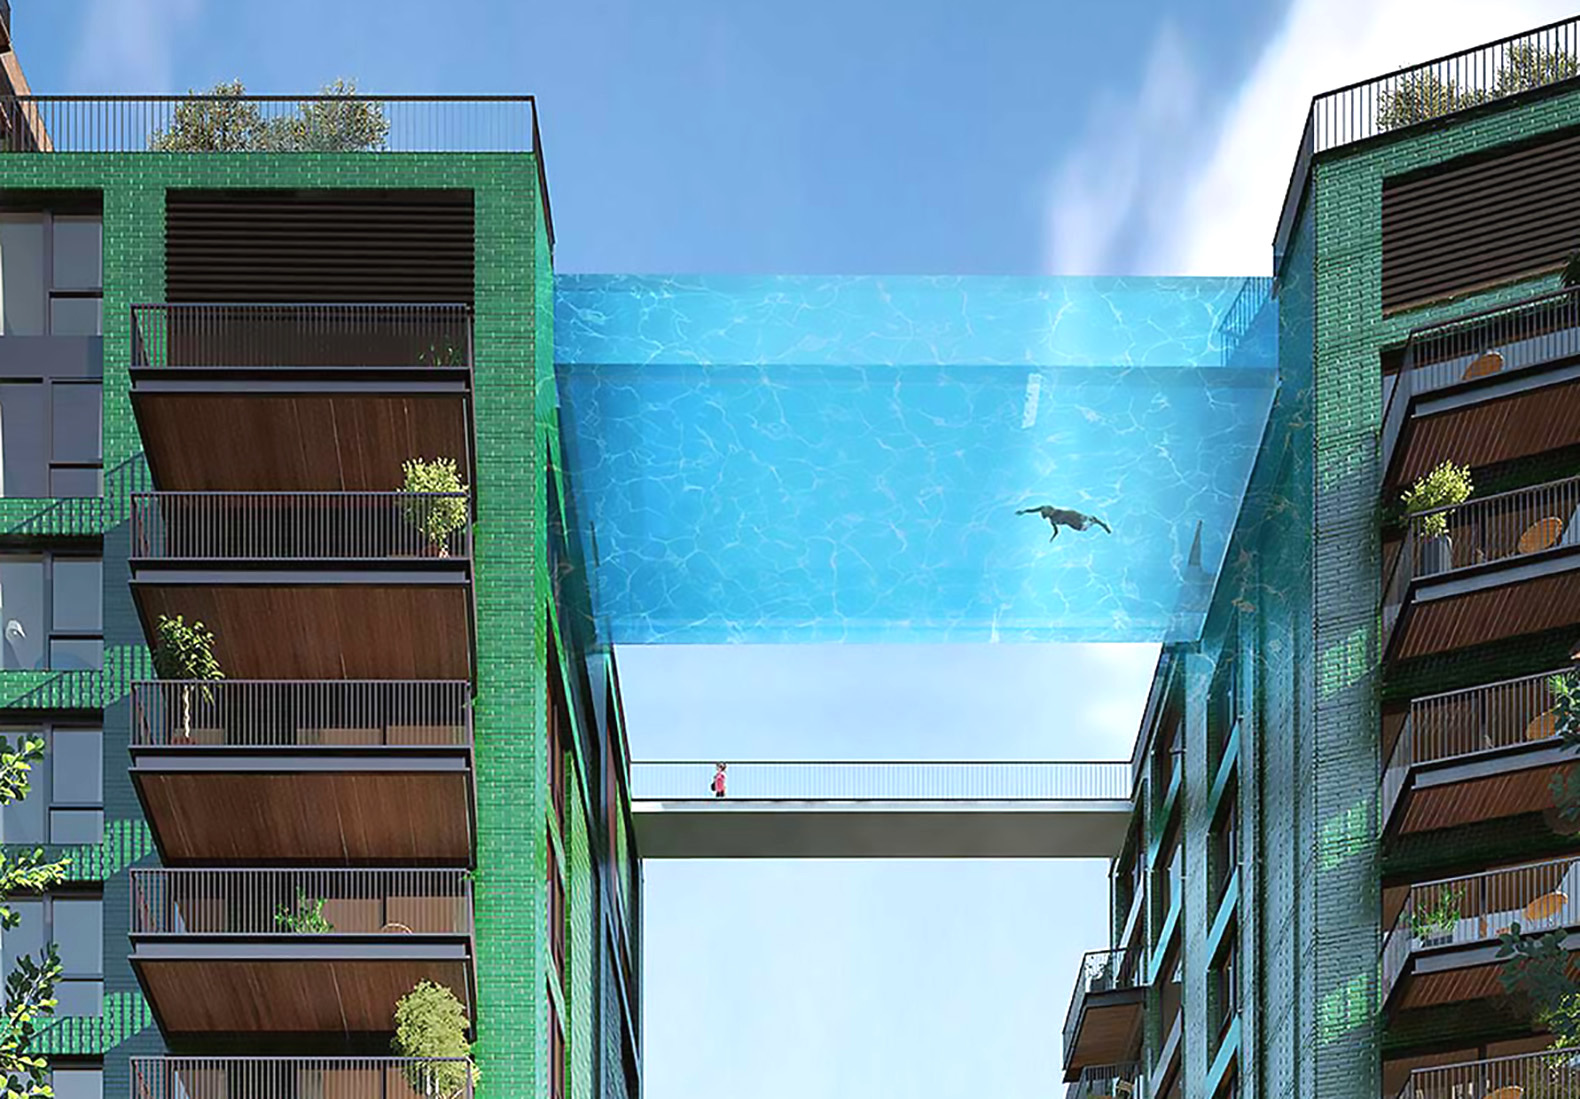 Glass-bottomed sky pool will be suspended 115 feet in the air